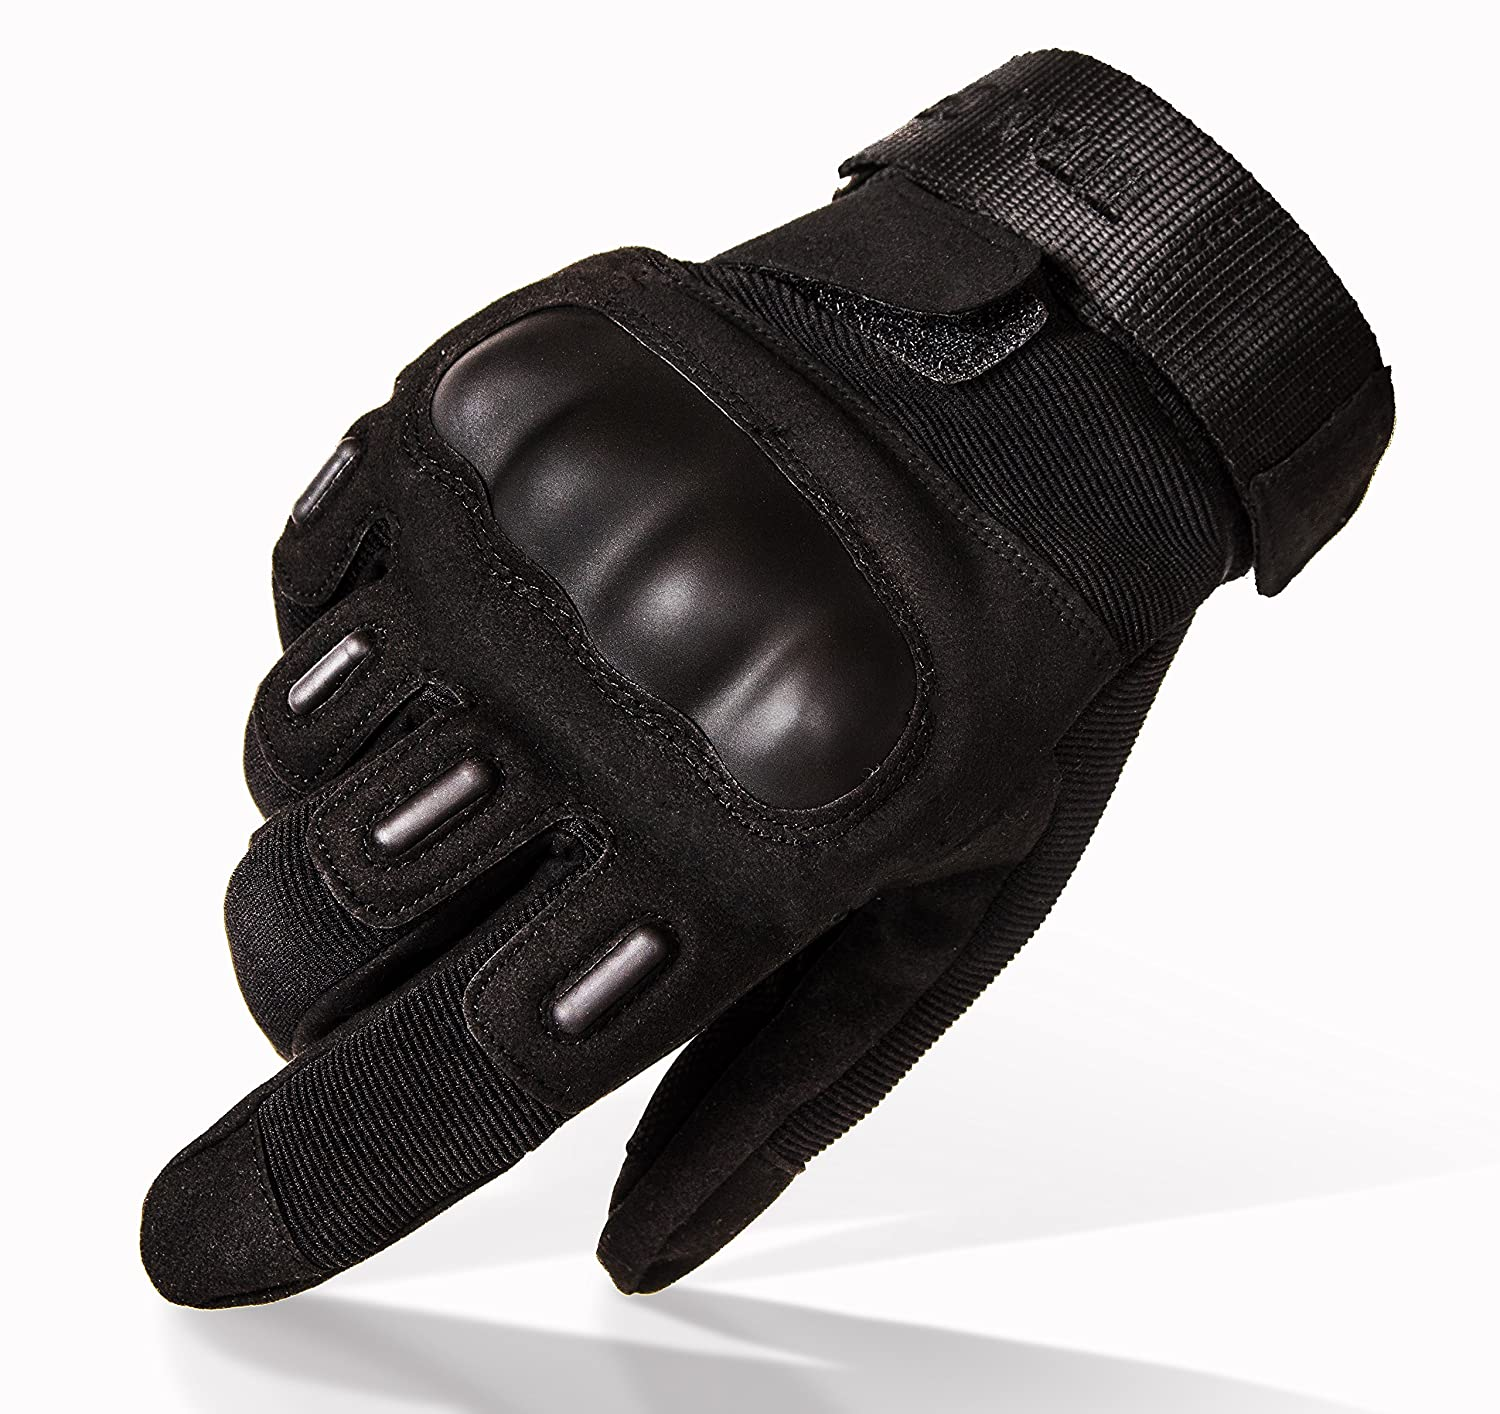 Best Motorcycle Gloves 2021 - Reviews & Buyer's Guide | JohnBurrCycles